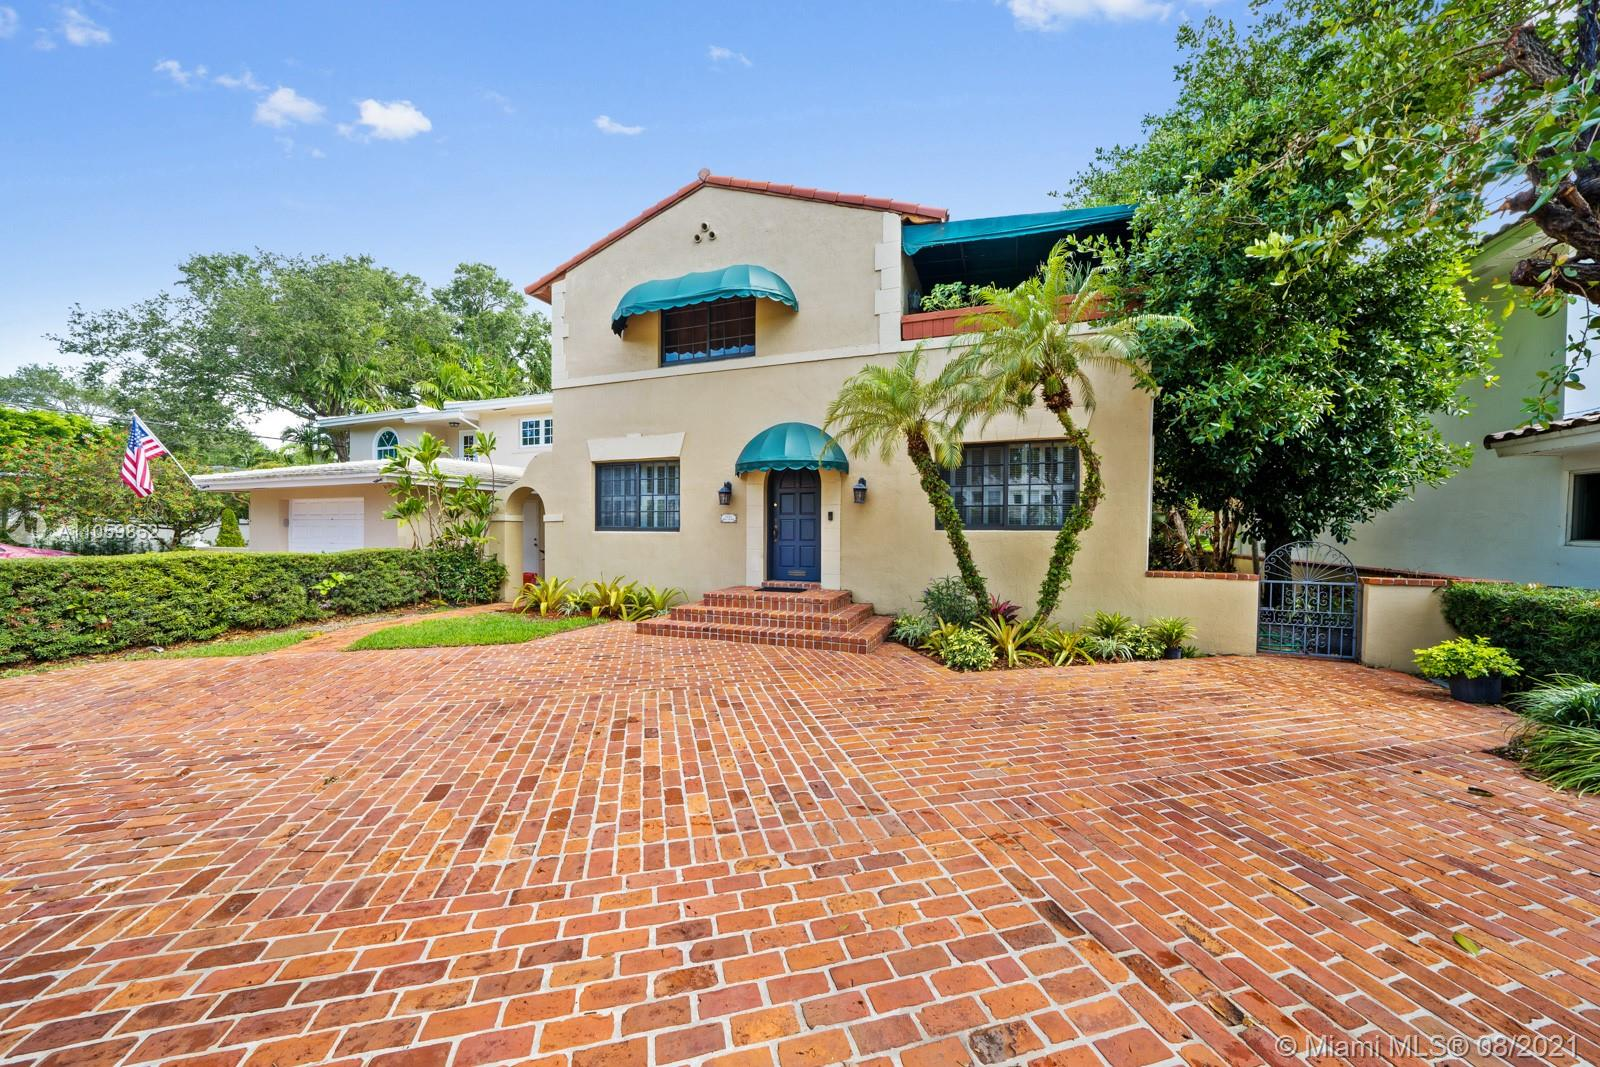 1925 Old Spanish located in South Coral Gables walking distance to the University of Miami and Riviera Golf Course. The large Chicago brick circular driveway welcomes you to this 4 bedroom 2 bathroom home. Partially equipped with impact windows, roof was replaced in 2014, 2017 water heater and washer/dryer, septic tank emptied and inspected 2019, and A/C installed 2016. The lower level has one bedroom and one bathroom, formal dining room, living room, family room, breakfast nook or office, laundry room and kitchen. The upper level containing 3 bedrooms and 1 bathroom with a large balcony located outside the primary suite. YARD HAS ROOM FOR A POOL.